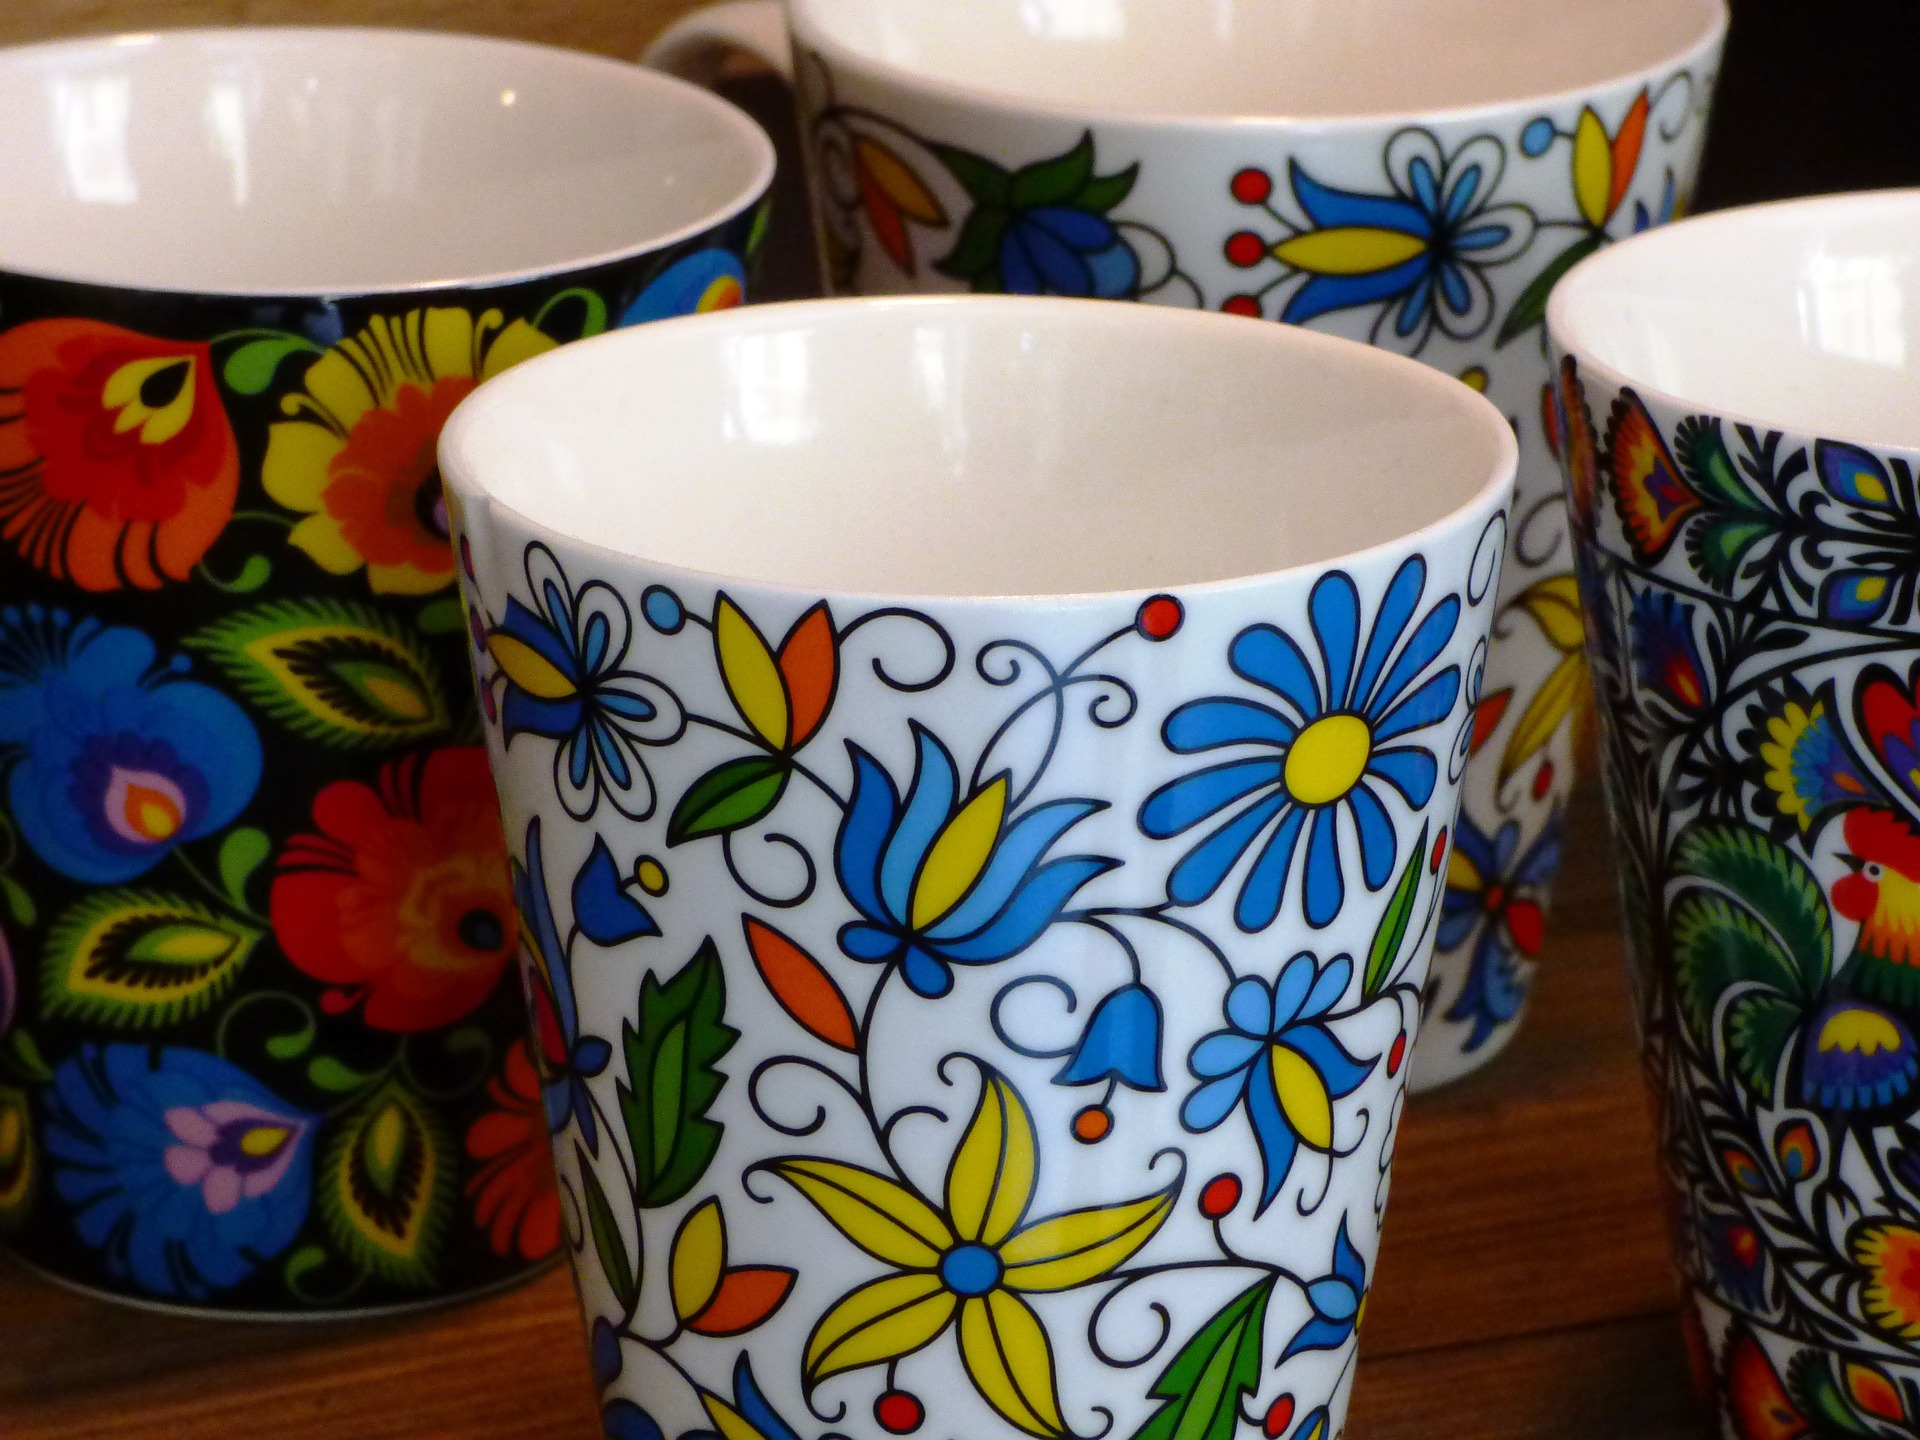 Six easy steps for making your own mugs – and how they can make top profits on eBay